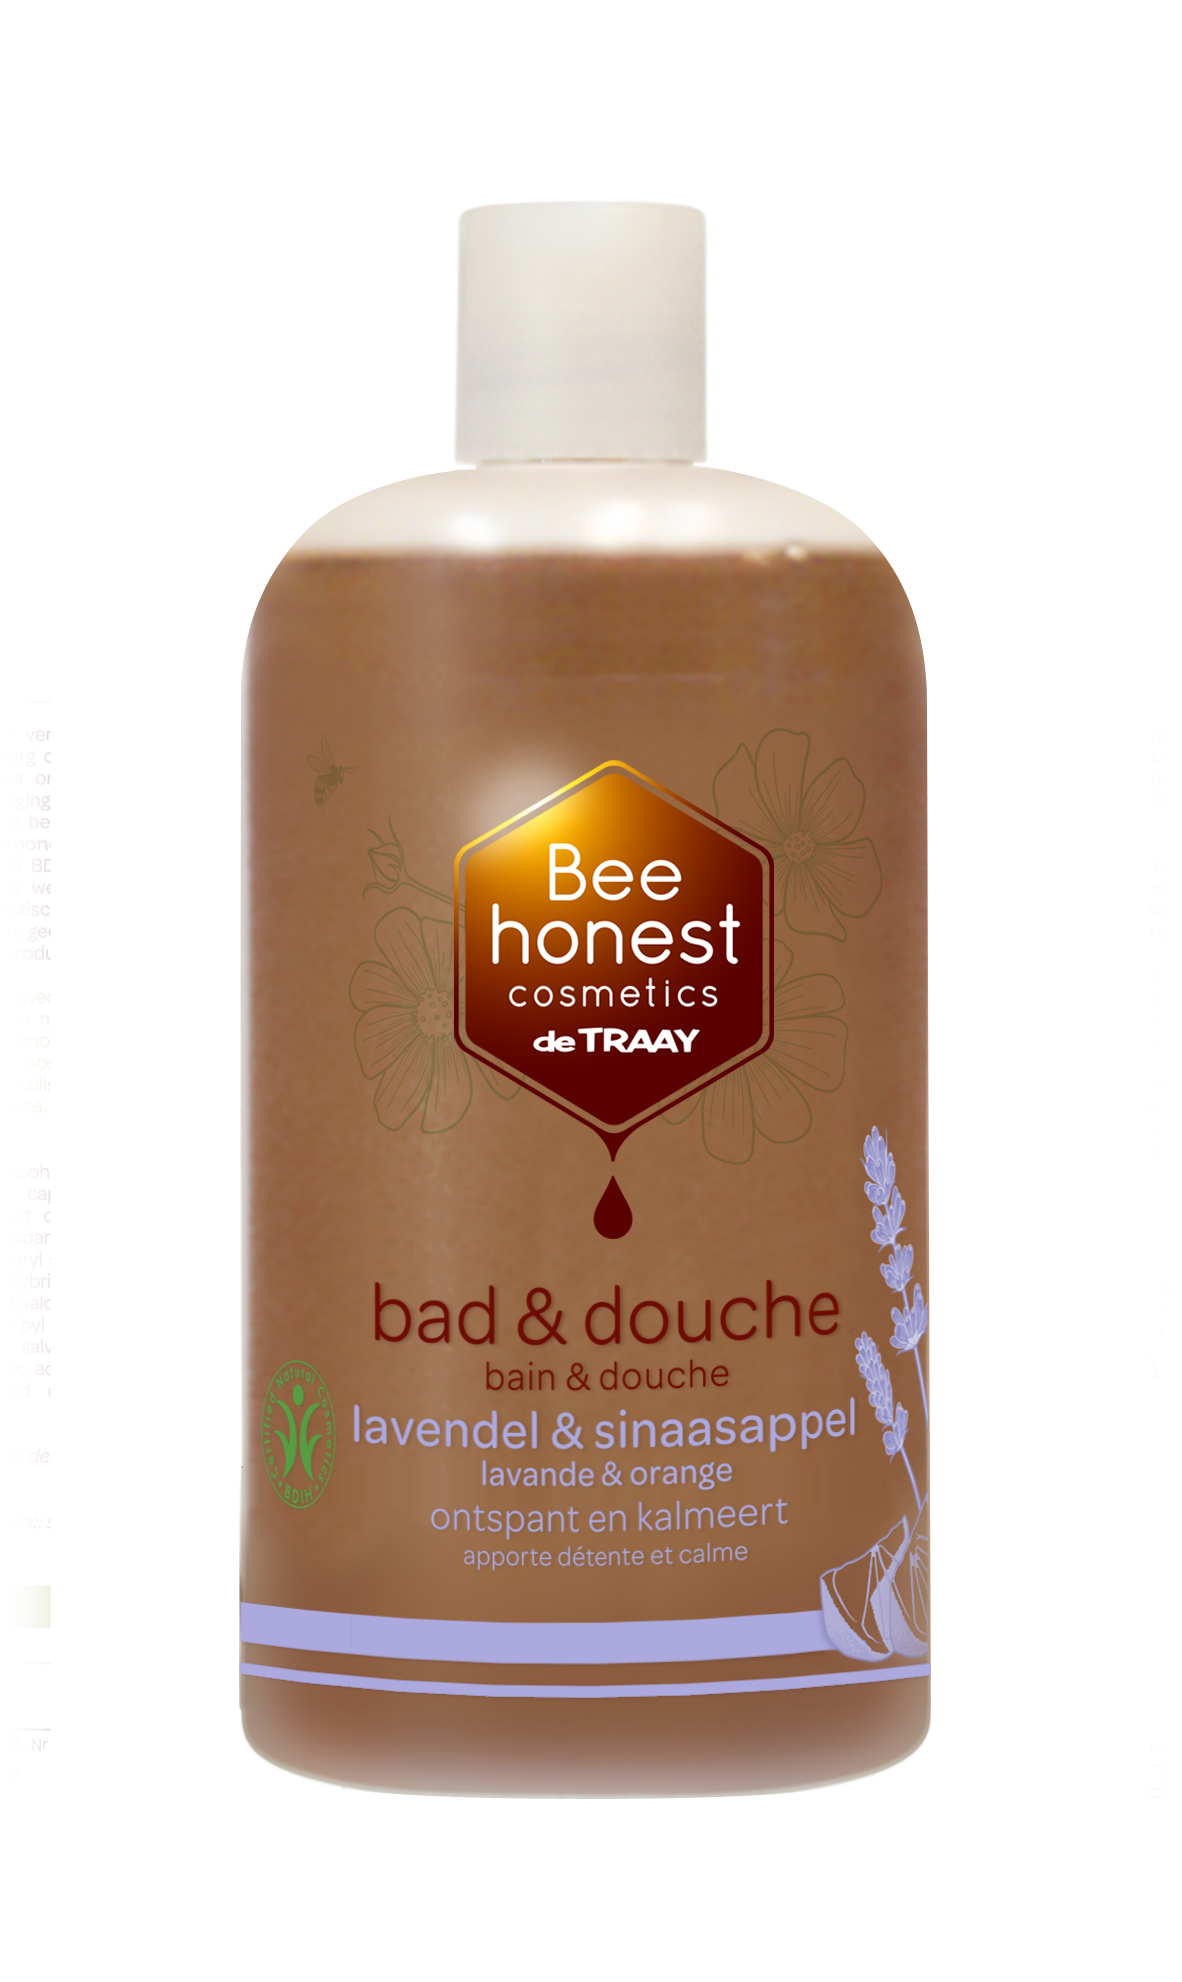 Bad & douche lavendel & sinaasappel 500ml